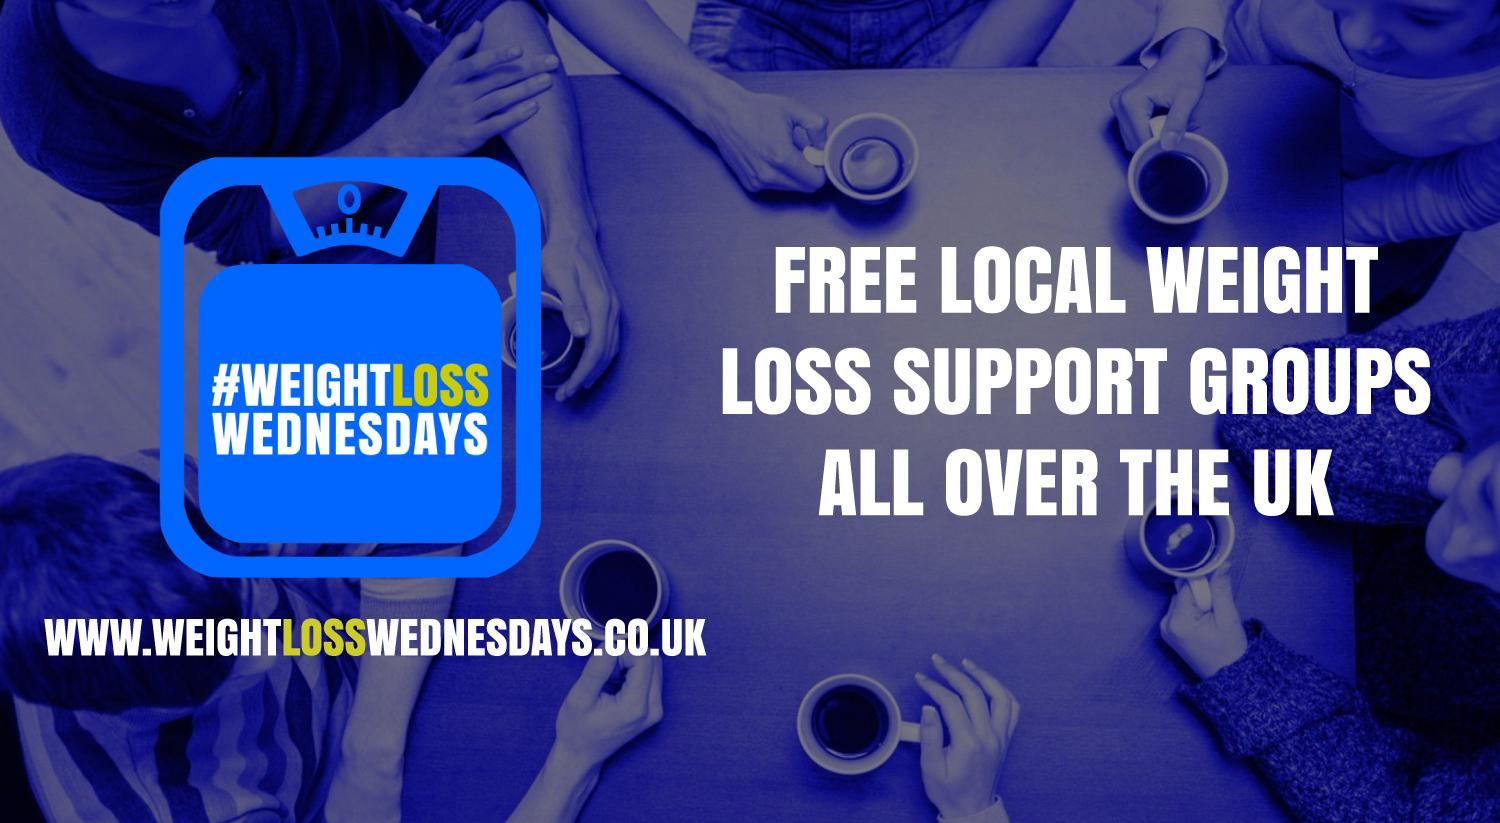 WEIGHT LOSS WEDNESDAYS! Free weekly support group in Spennymoor